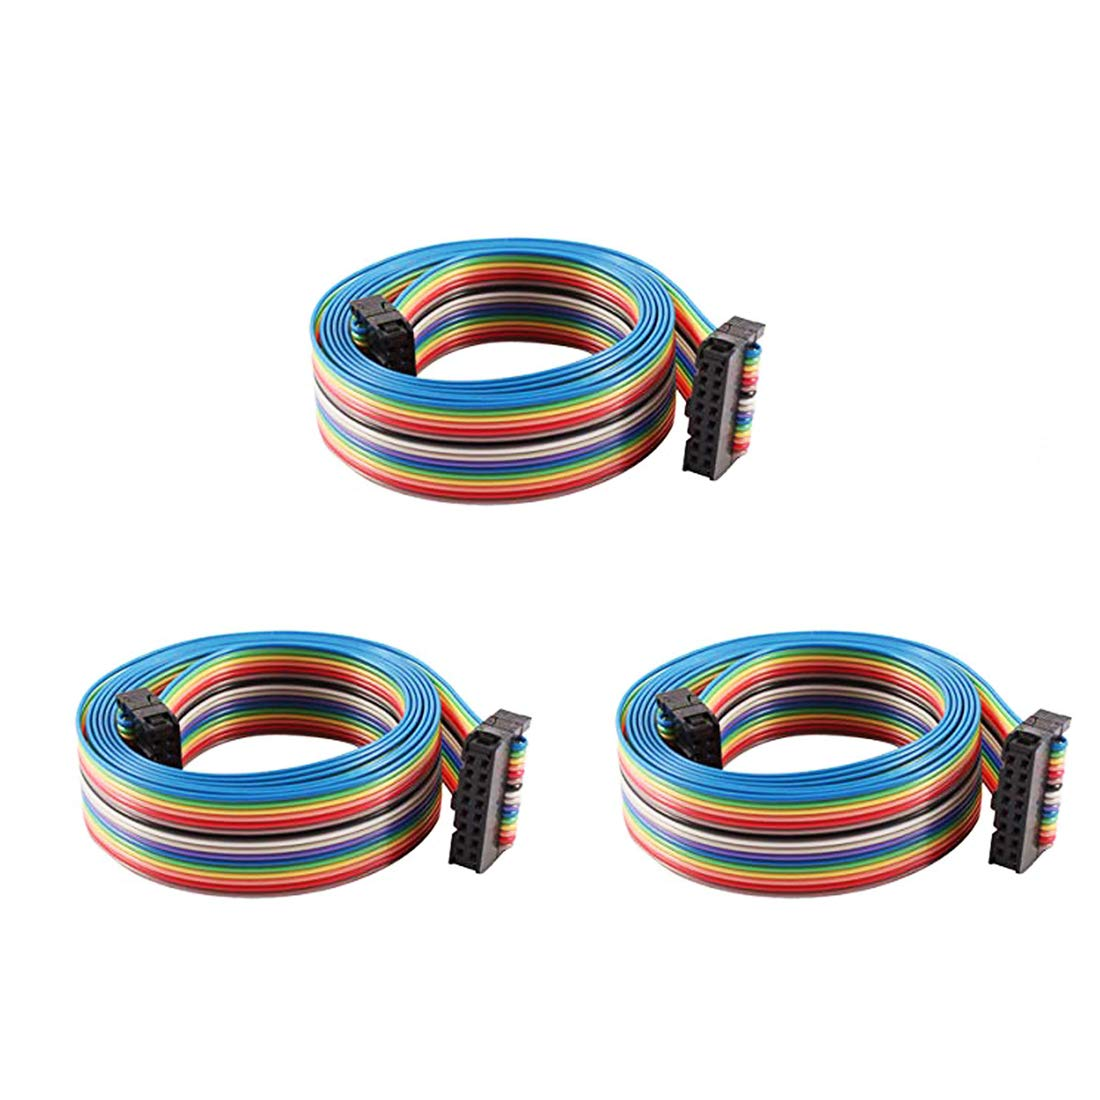 0.1Inch Pitch F//F Connector Yohii 3Pcs 7.1Inch IDC Cable 16 Pin IDC Flat Ribbon Cable